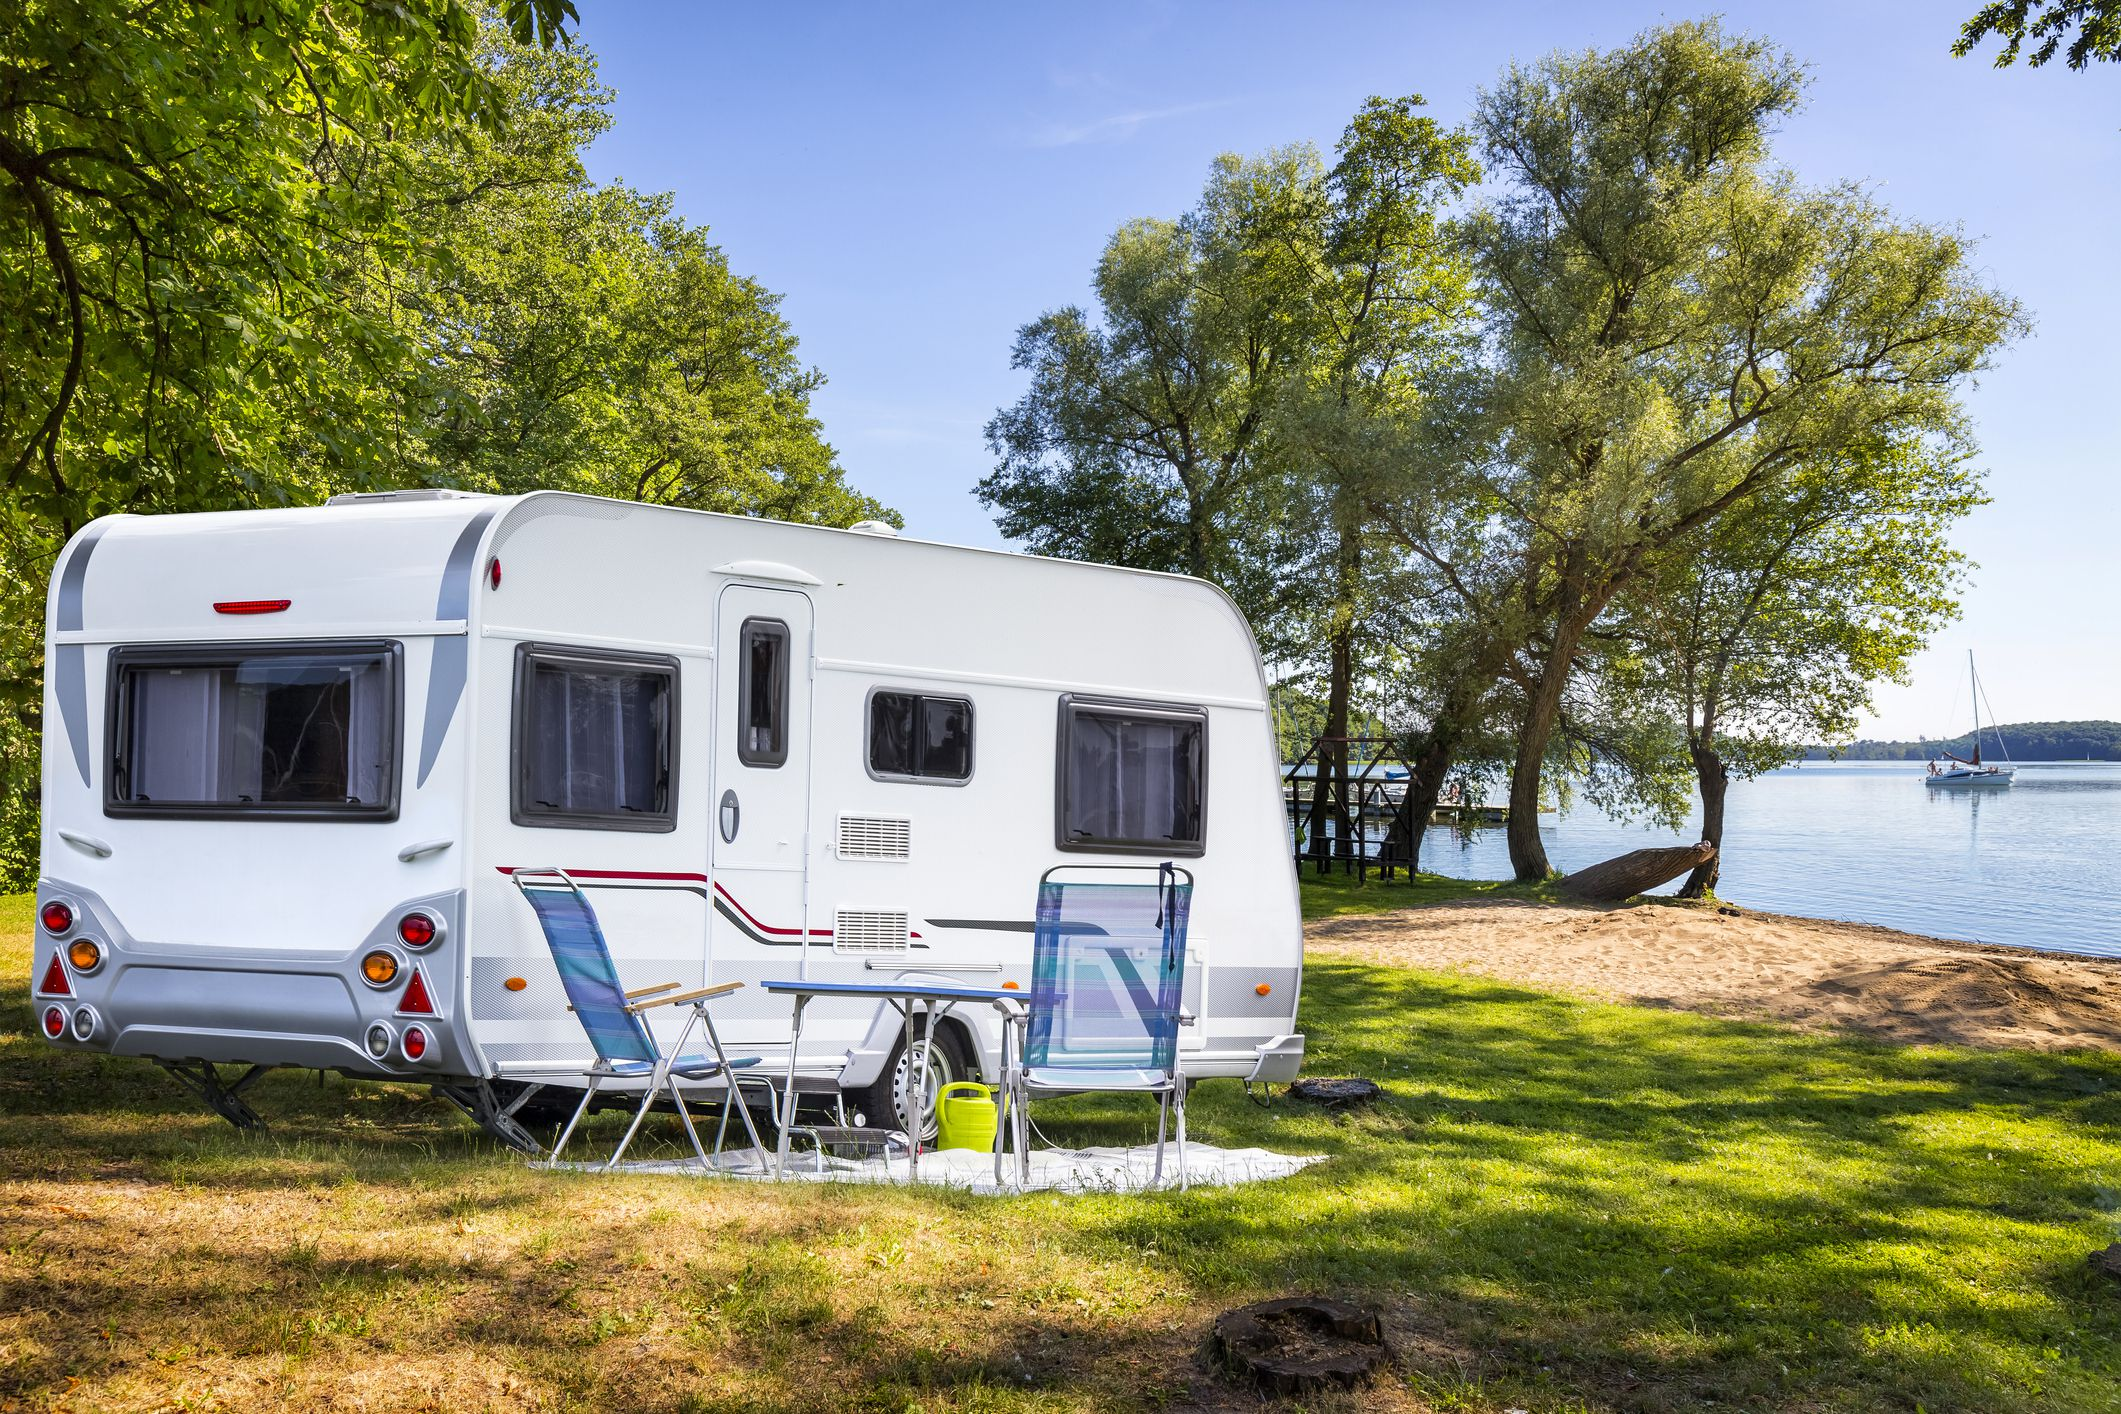 Should You Cover Your Camper Trailer With a Tarp?